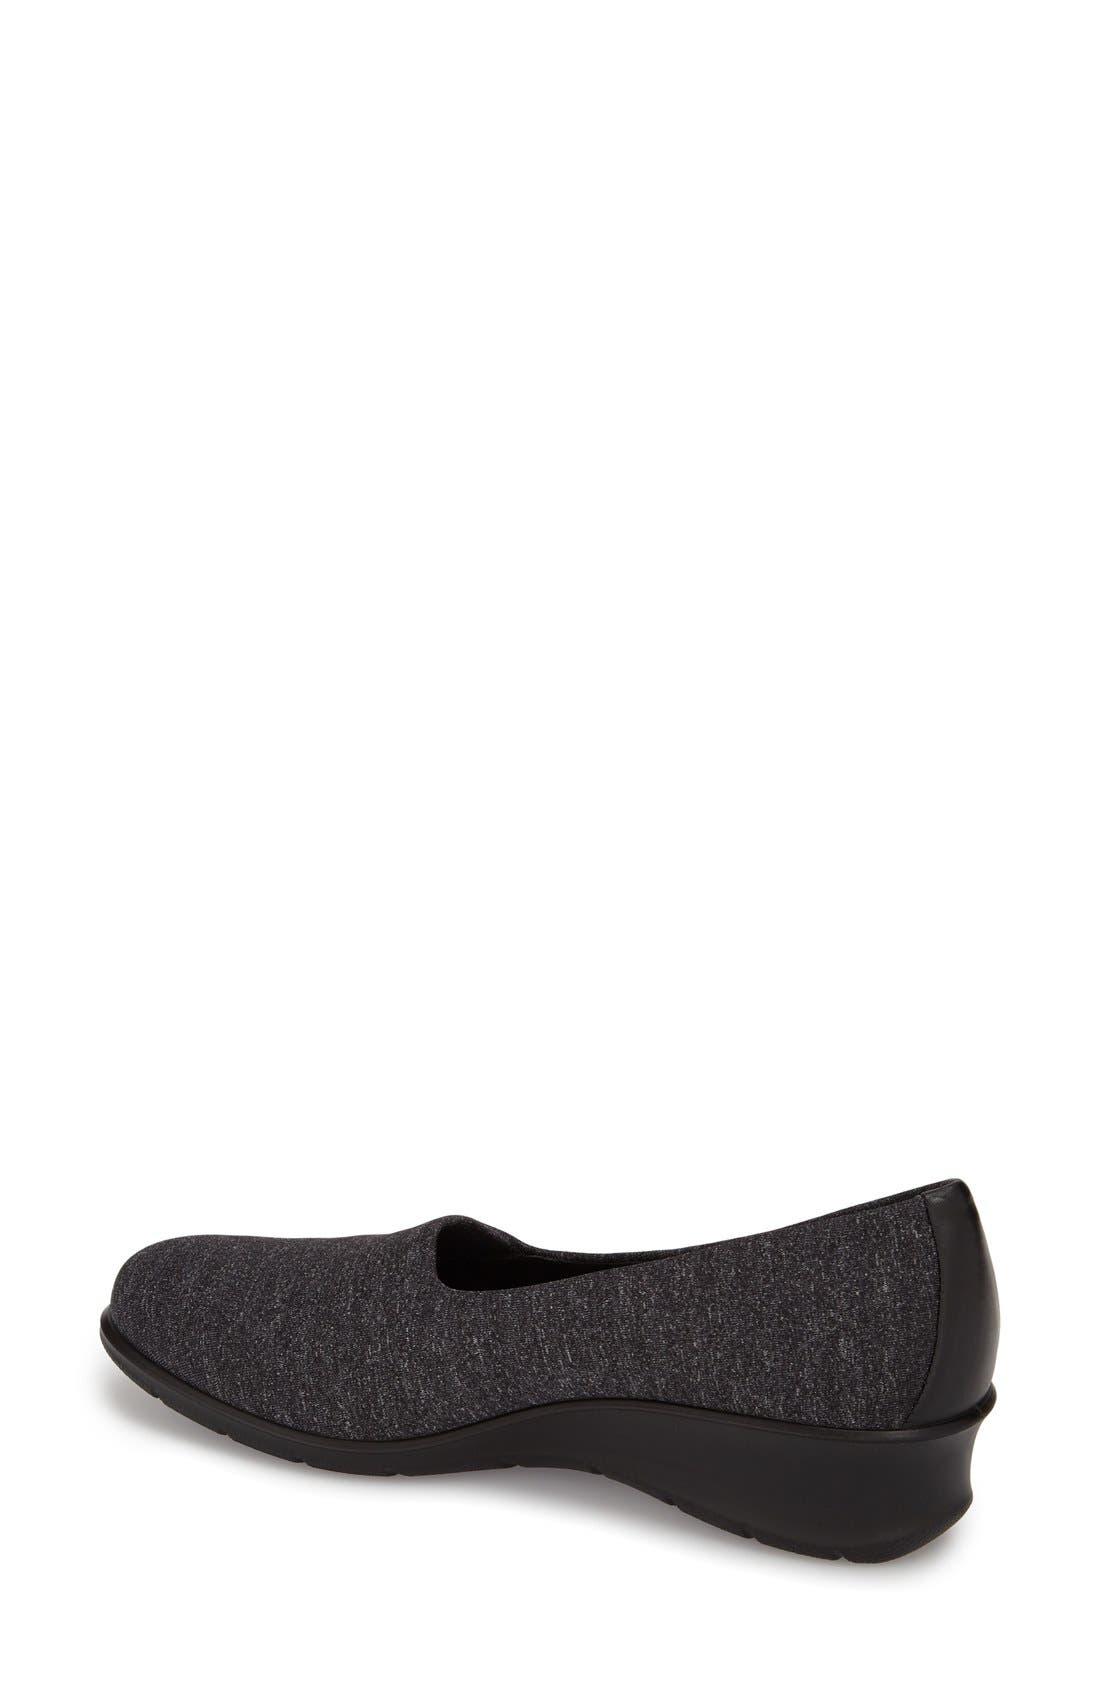 'Felicia - Stretch' Wedge Loafer,                             Alternate thumbnail 2, color,                             019